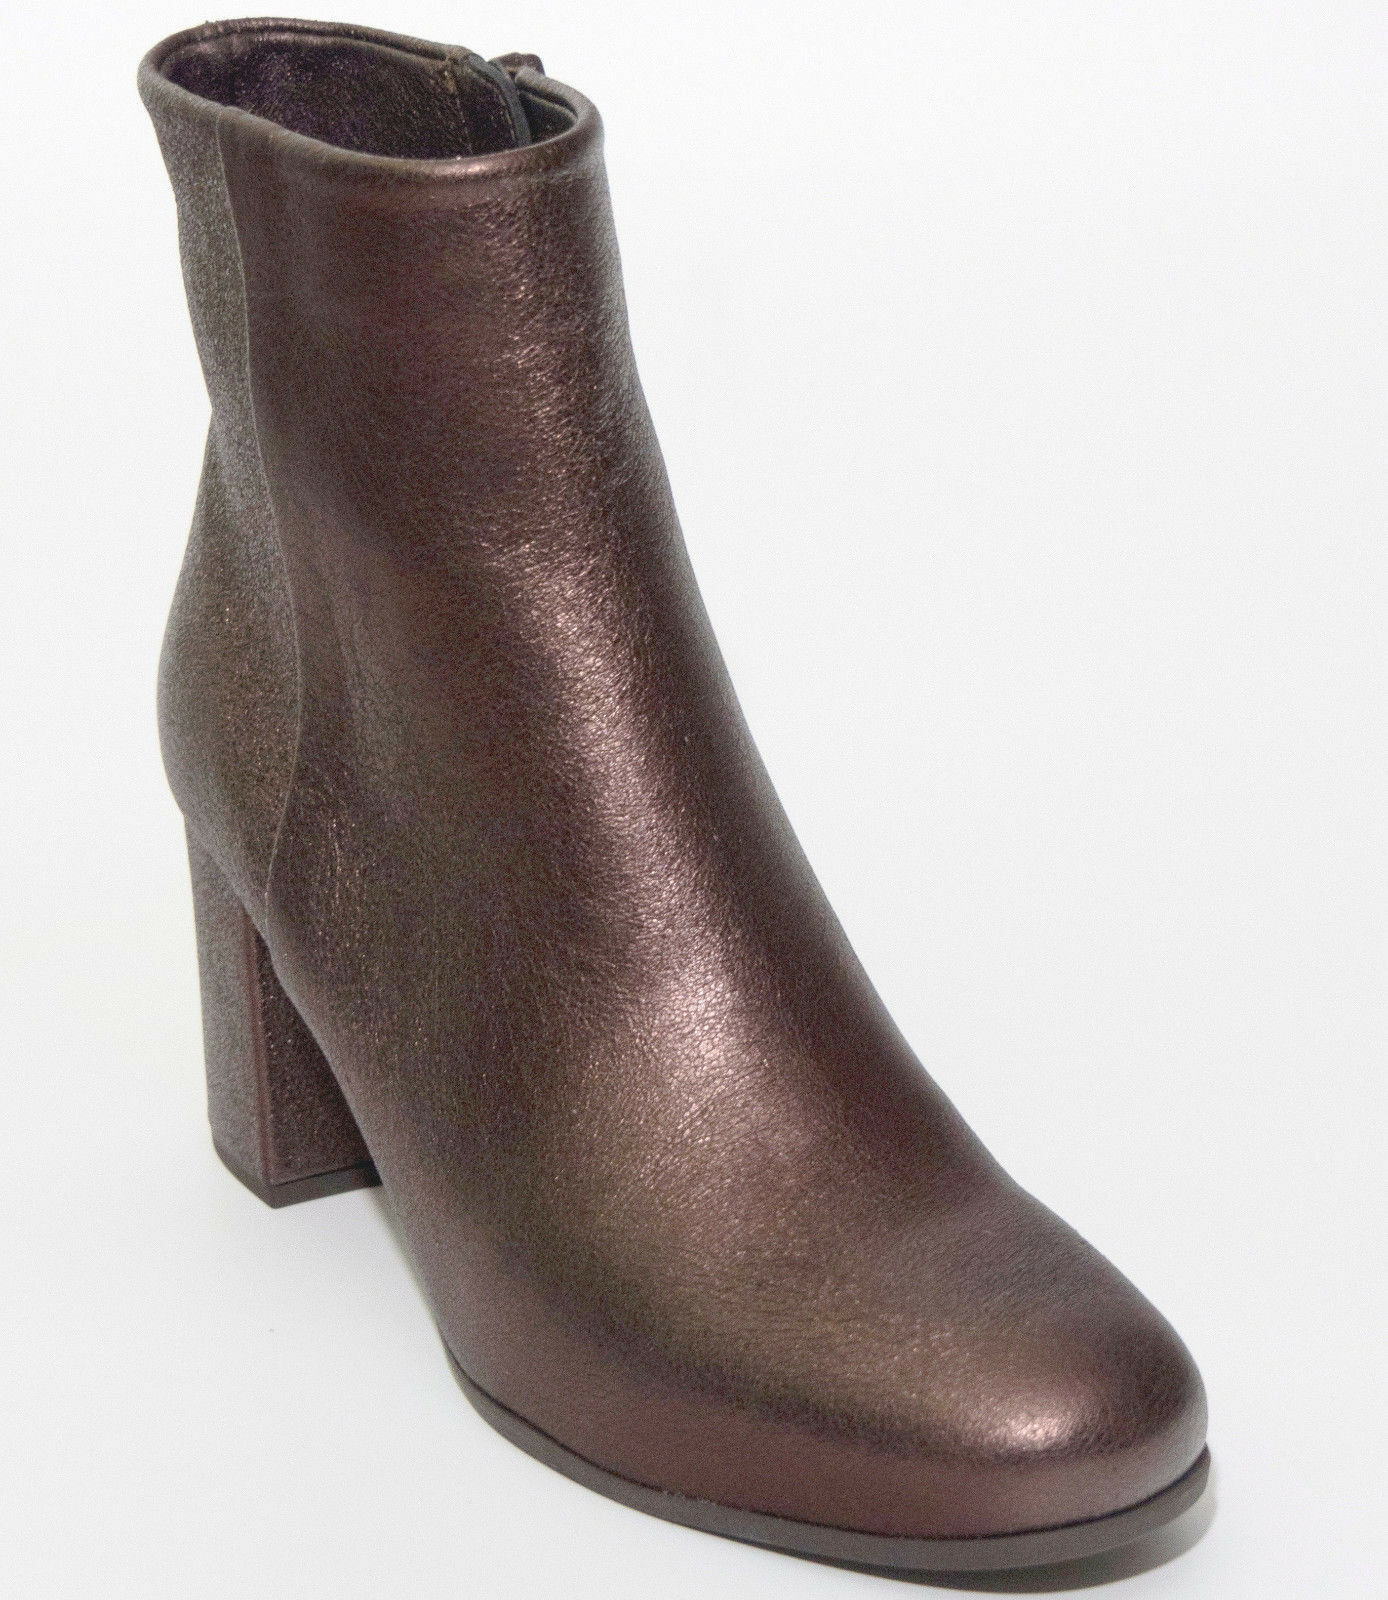 Unisa Ankle bota 38 Leather Copper marrón Metalic Gloss botas Made Spain zapatos New